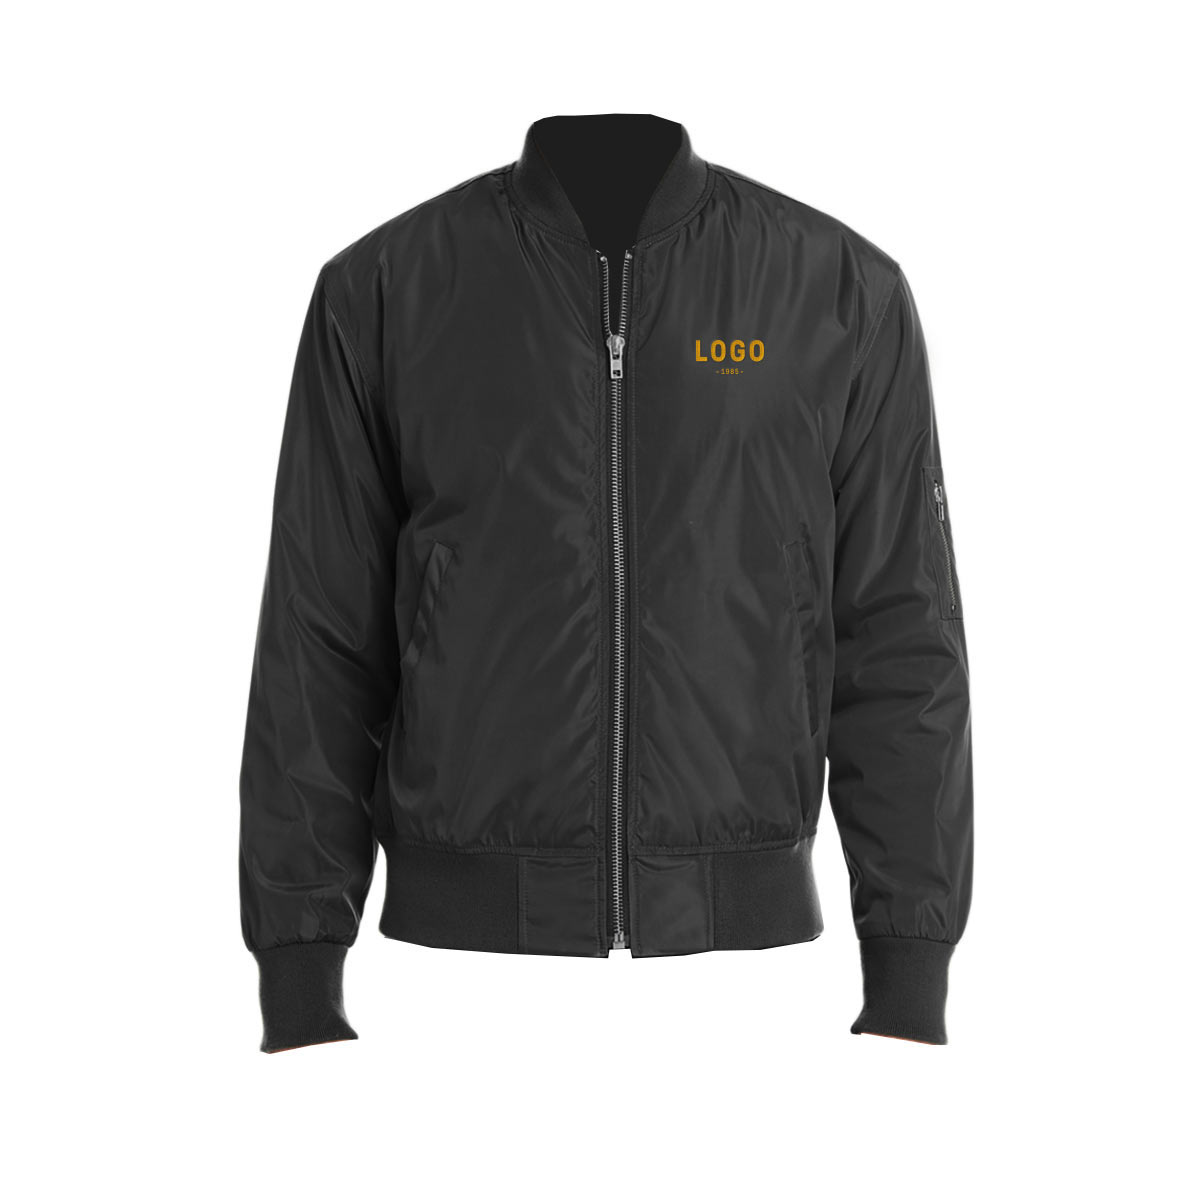 130204 bomber jacket embroidered up to 8k stitches